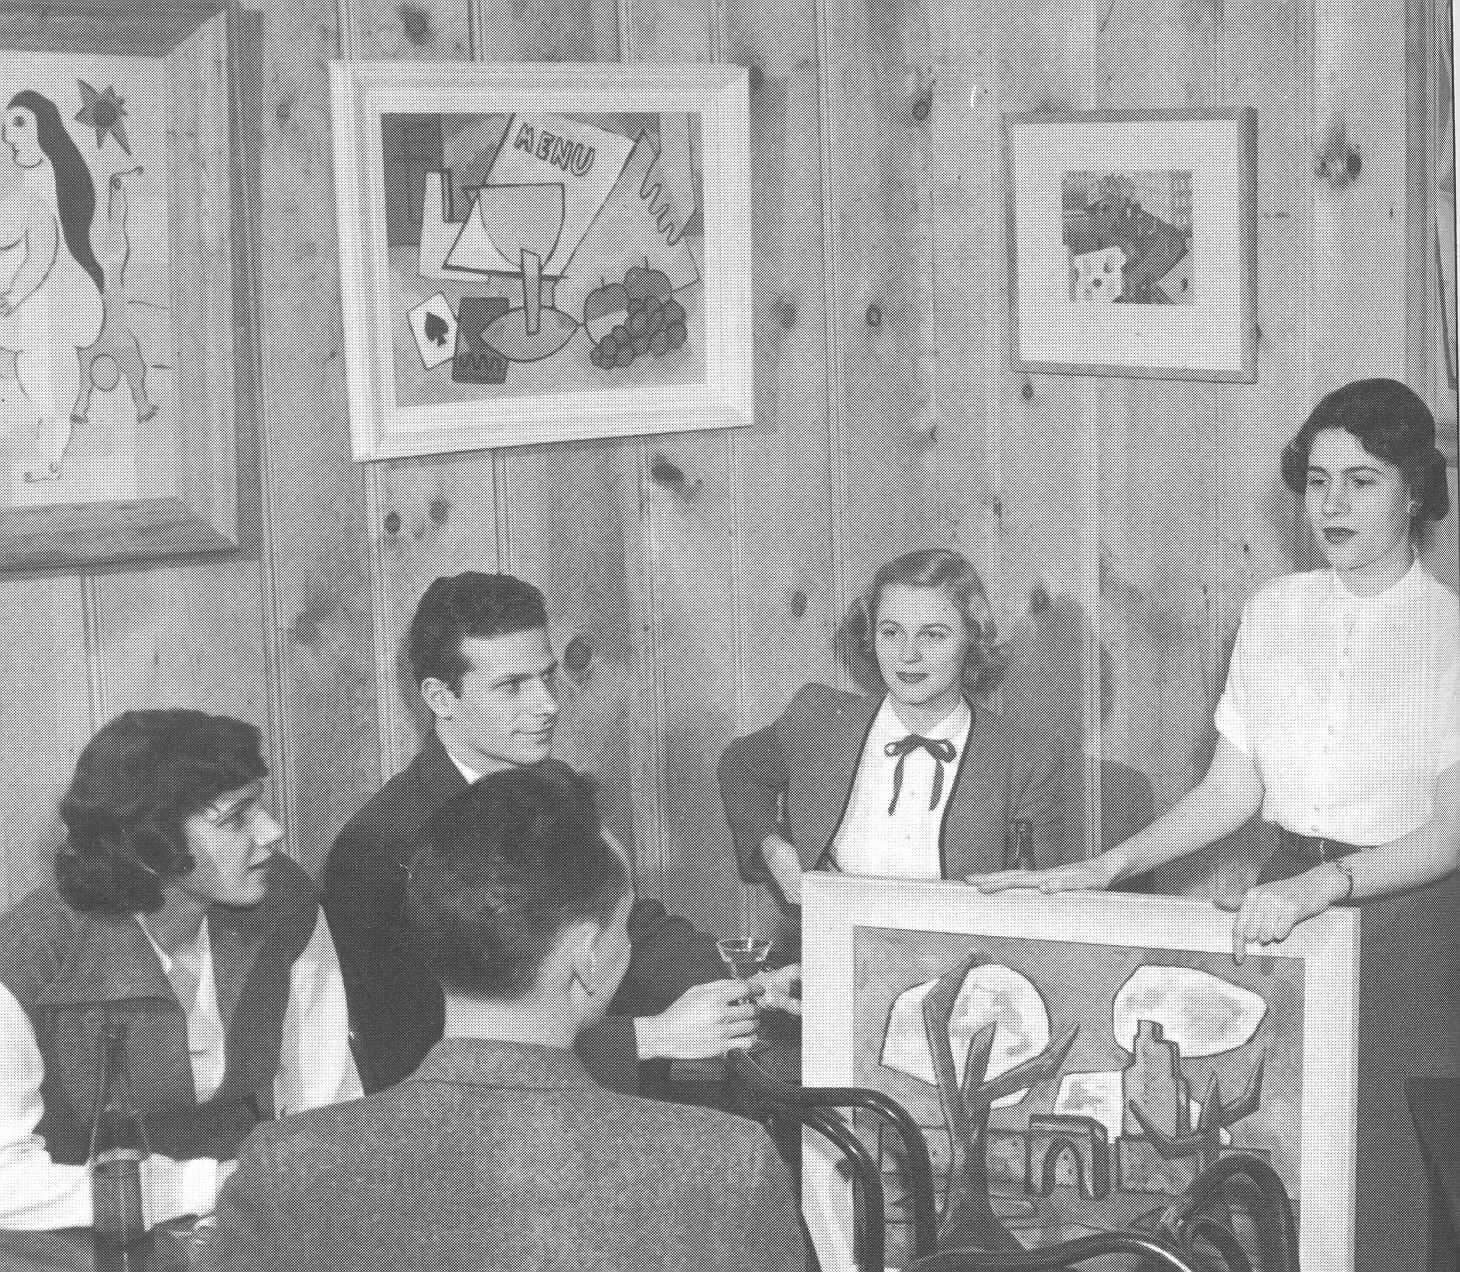 Morris Martick (second from left in rear) at a symposium on modern art at his tavern in the early 1950s. (Courtesy of Enoch Pratt Library Maryland Room)